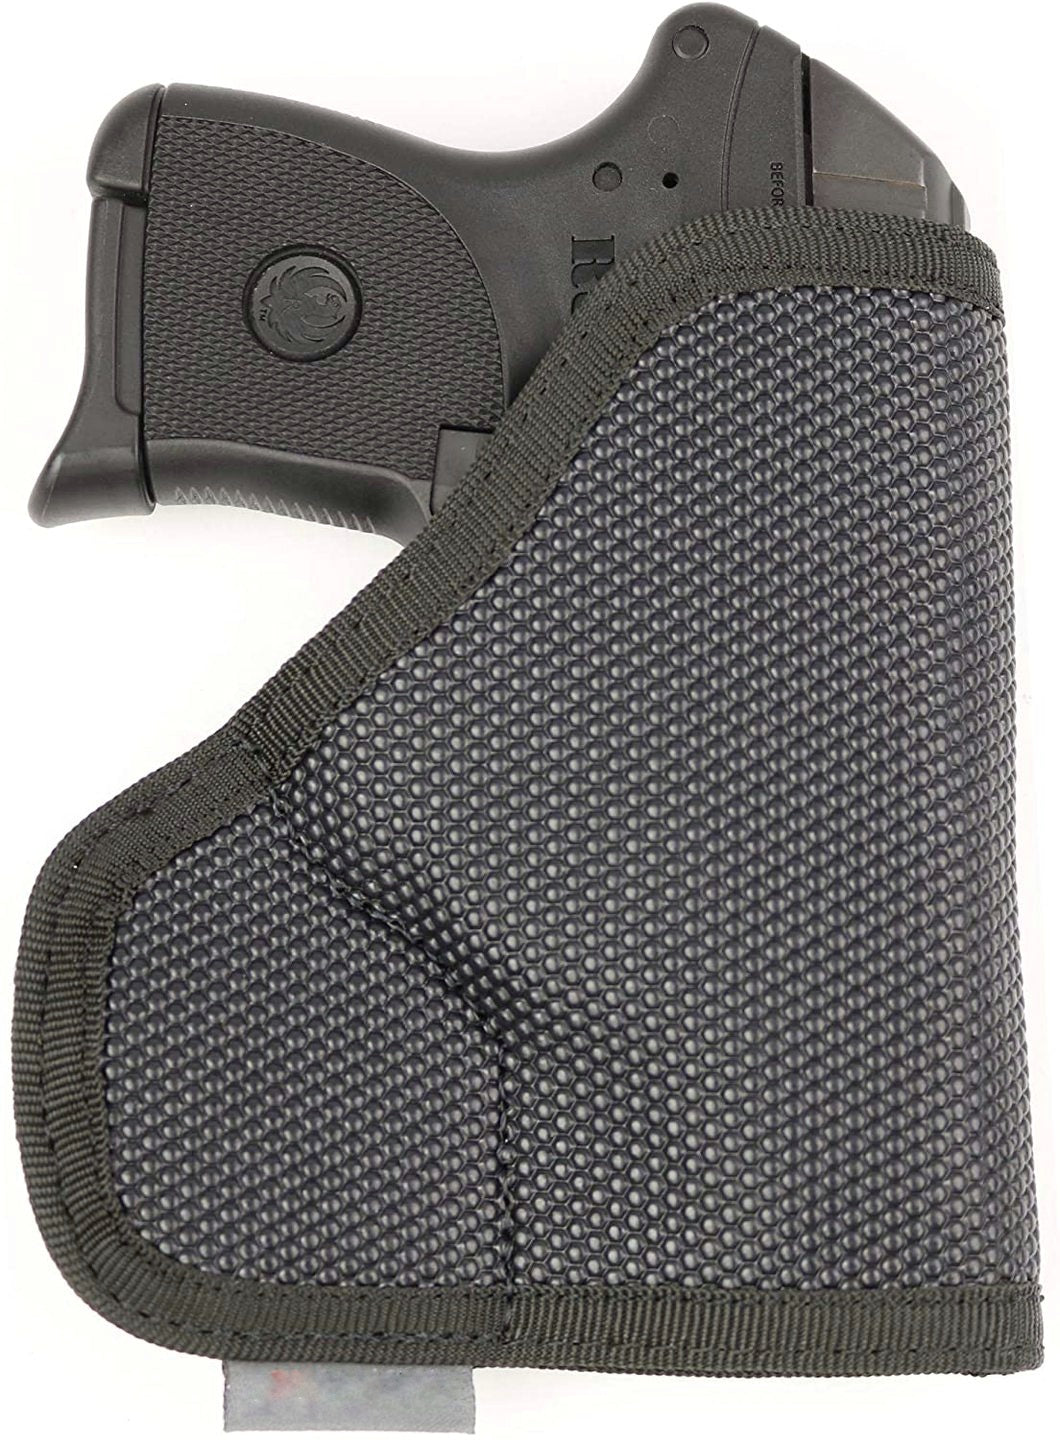 Pocket Holster For Concealed Carry - Subcompact & Micro